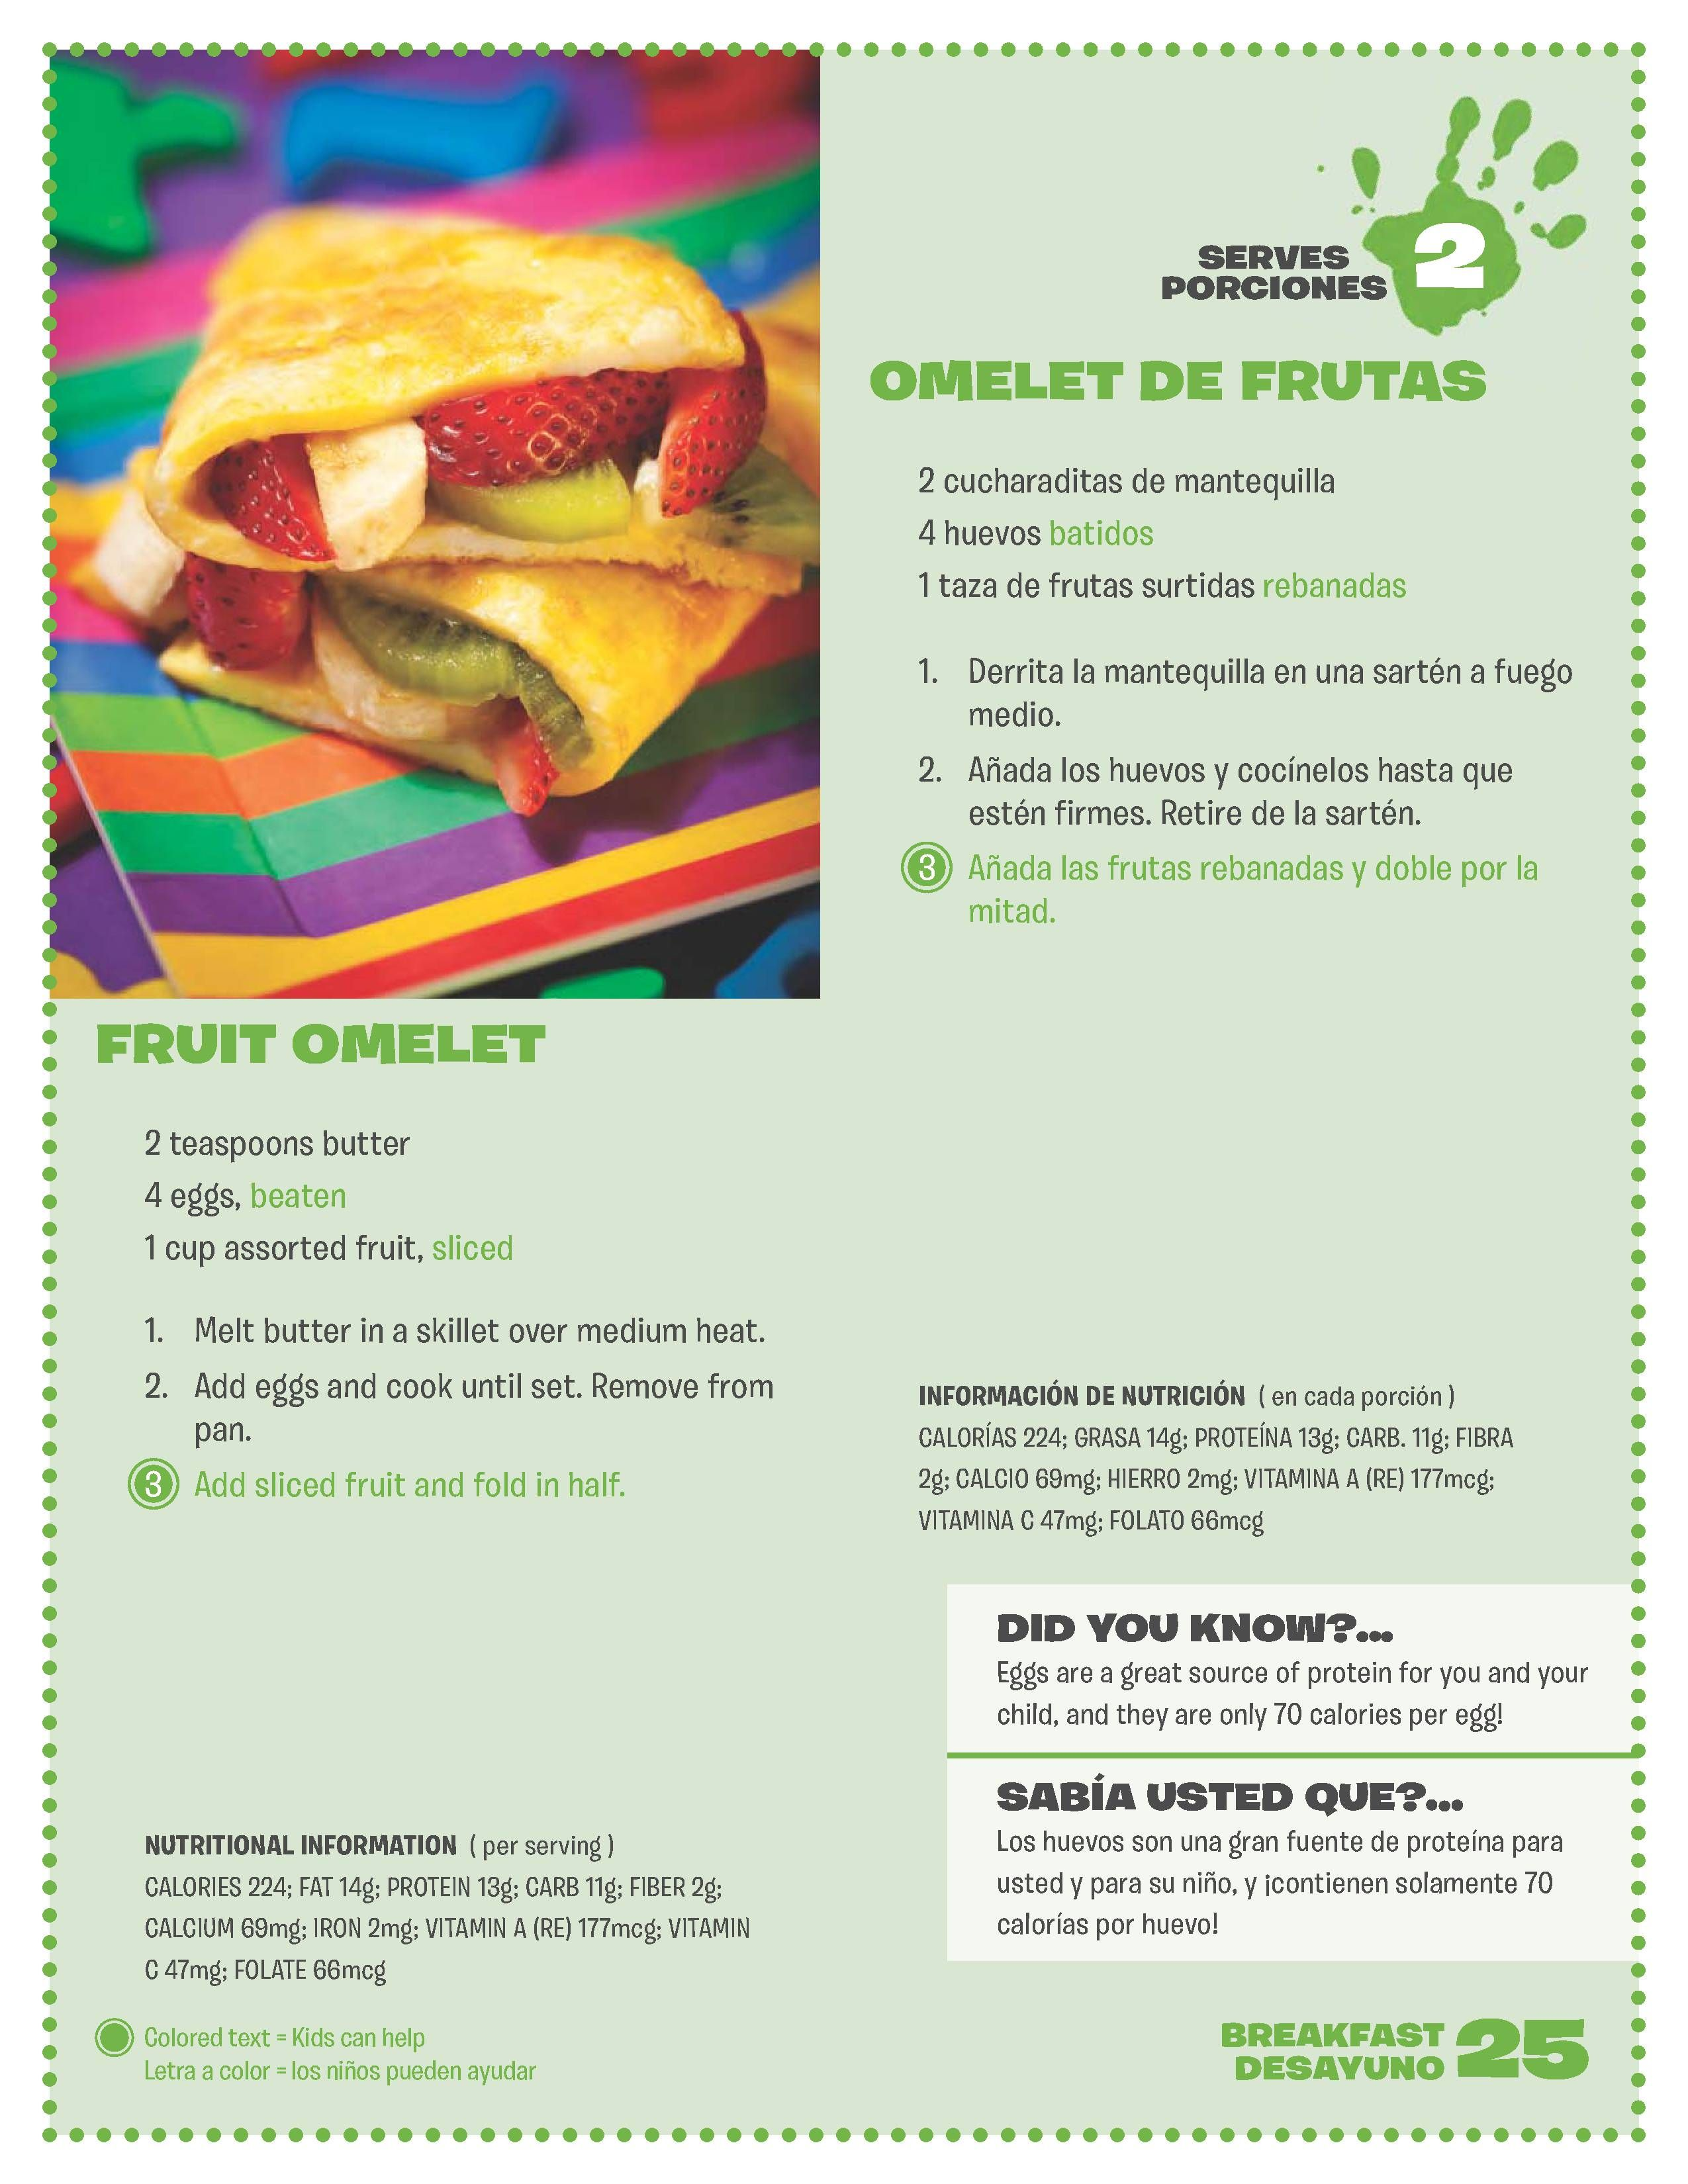 Fruit Omelet Omelet De Frutas Healthy Recipes Food Wic Program